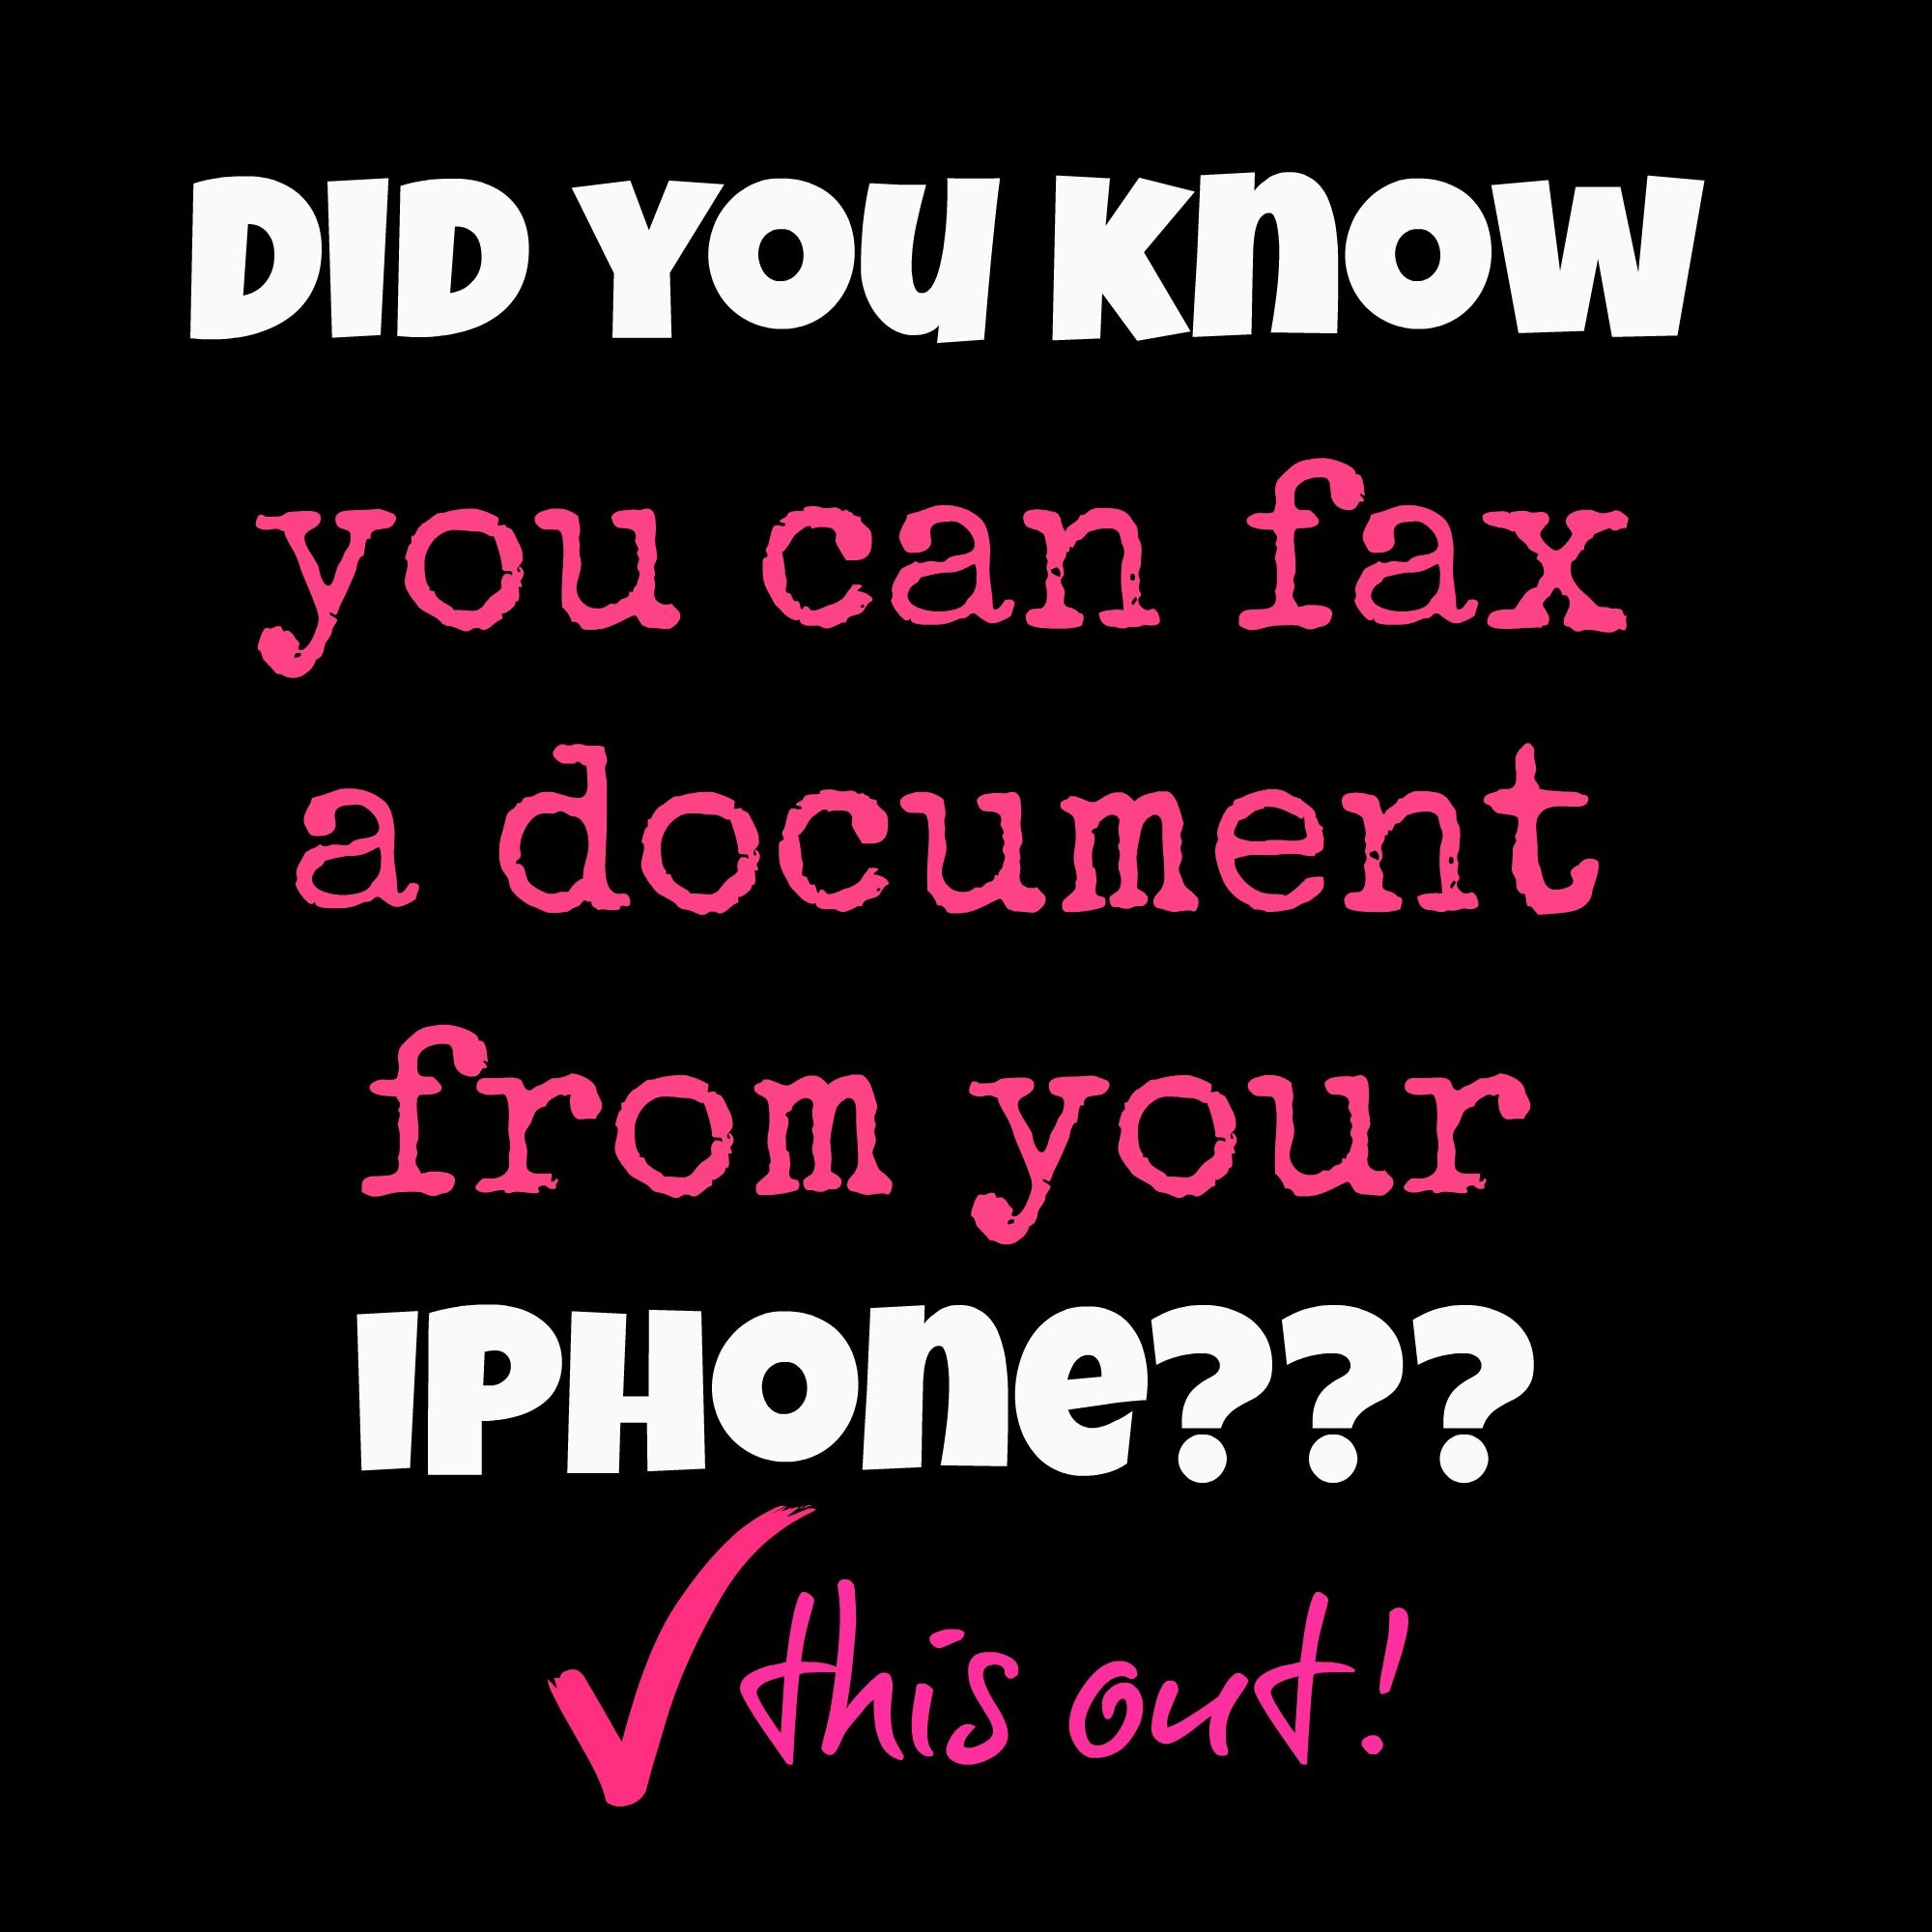 Did you know you can fax from HOME on your iPHONE?? Did